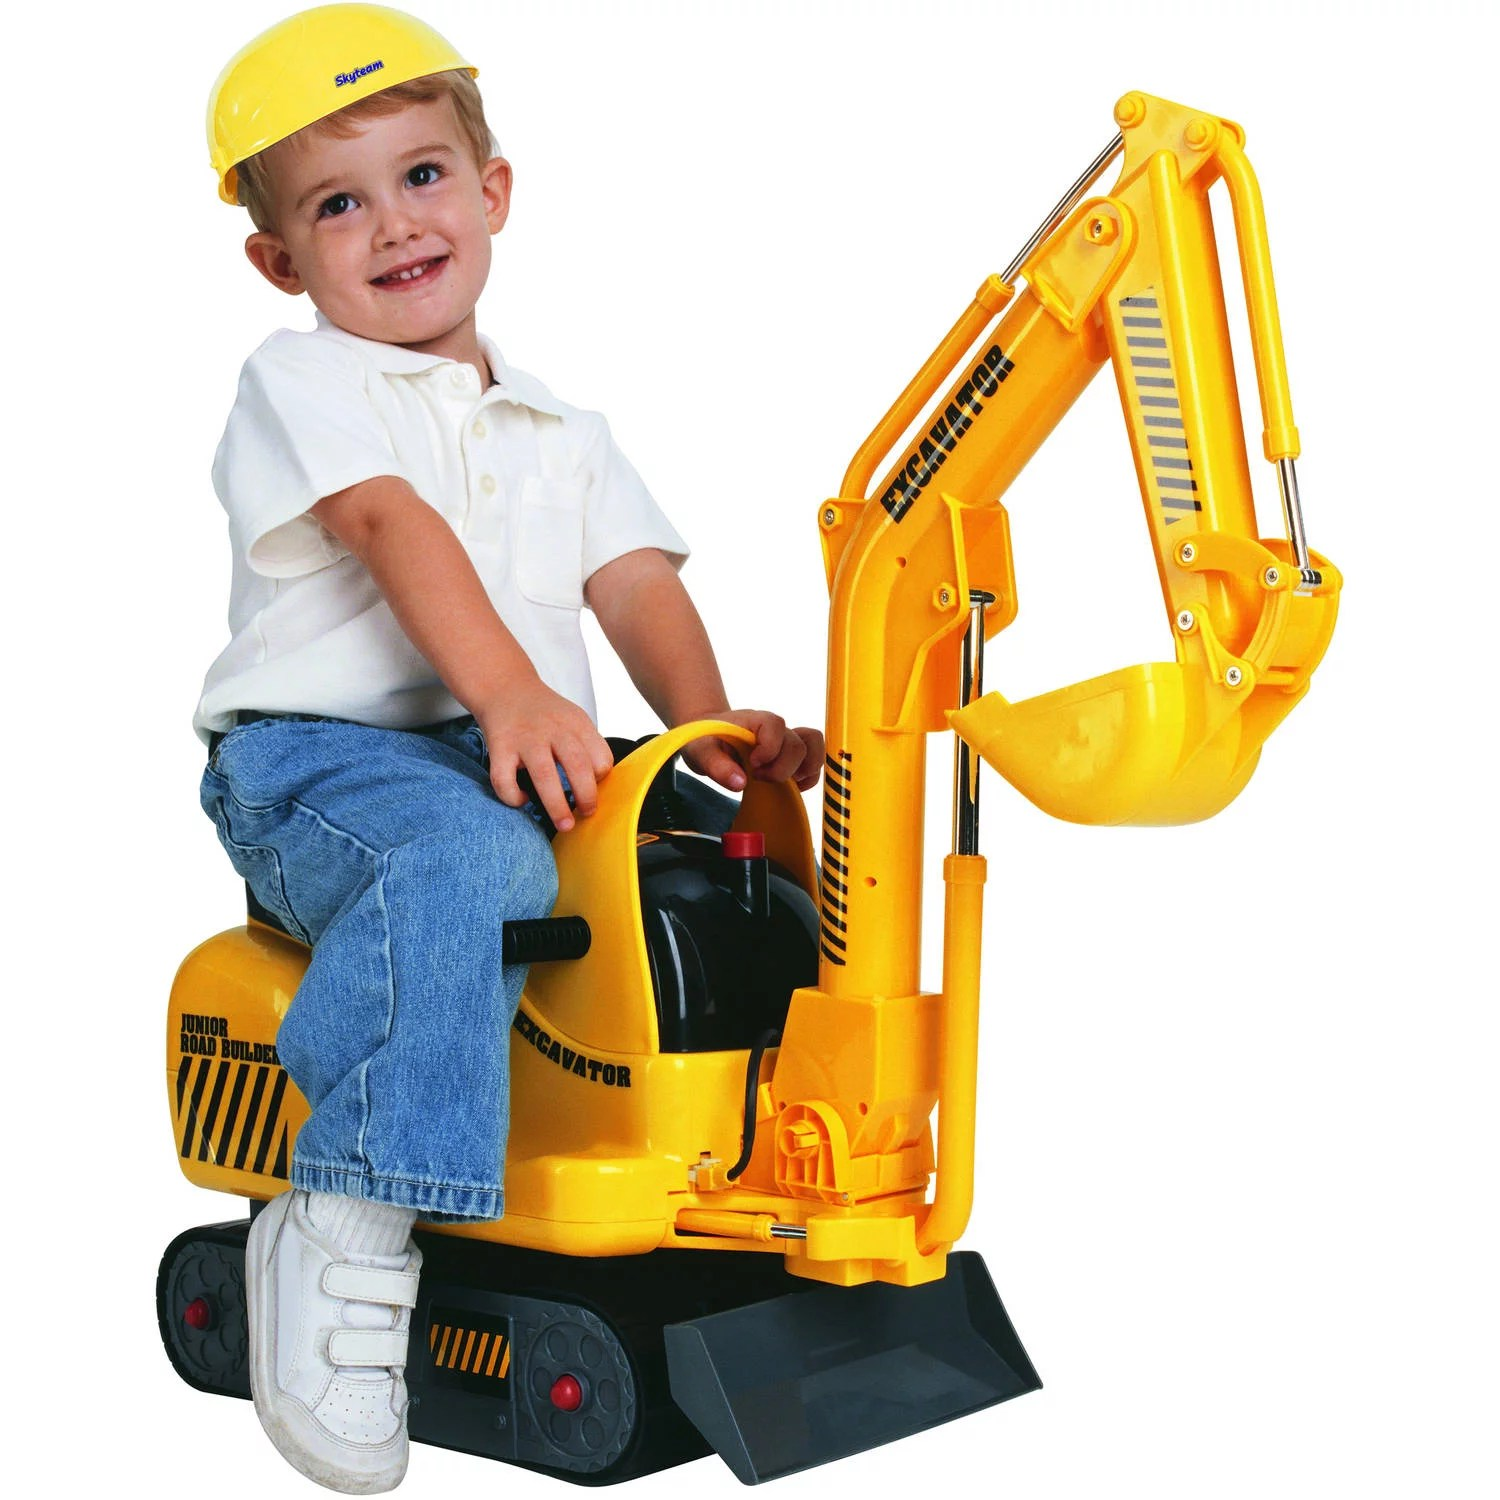 Digger Toy Details About Kids Excavator Ride On Construction Toddler Boys Battery Power Digger Truck Toy